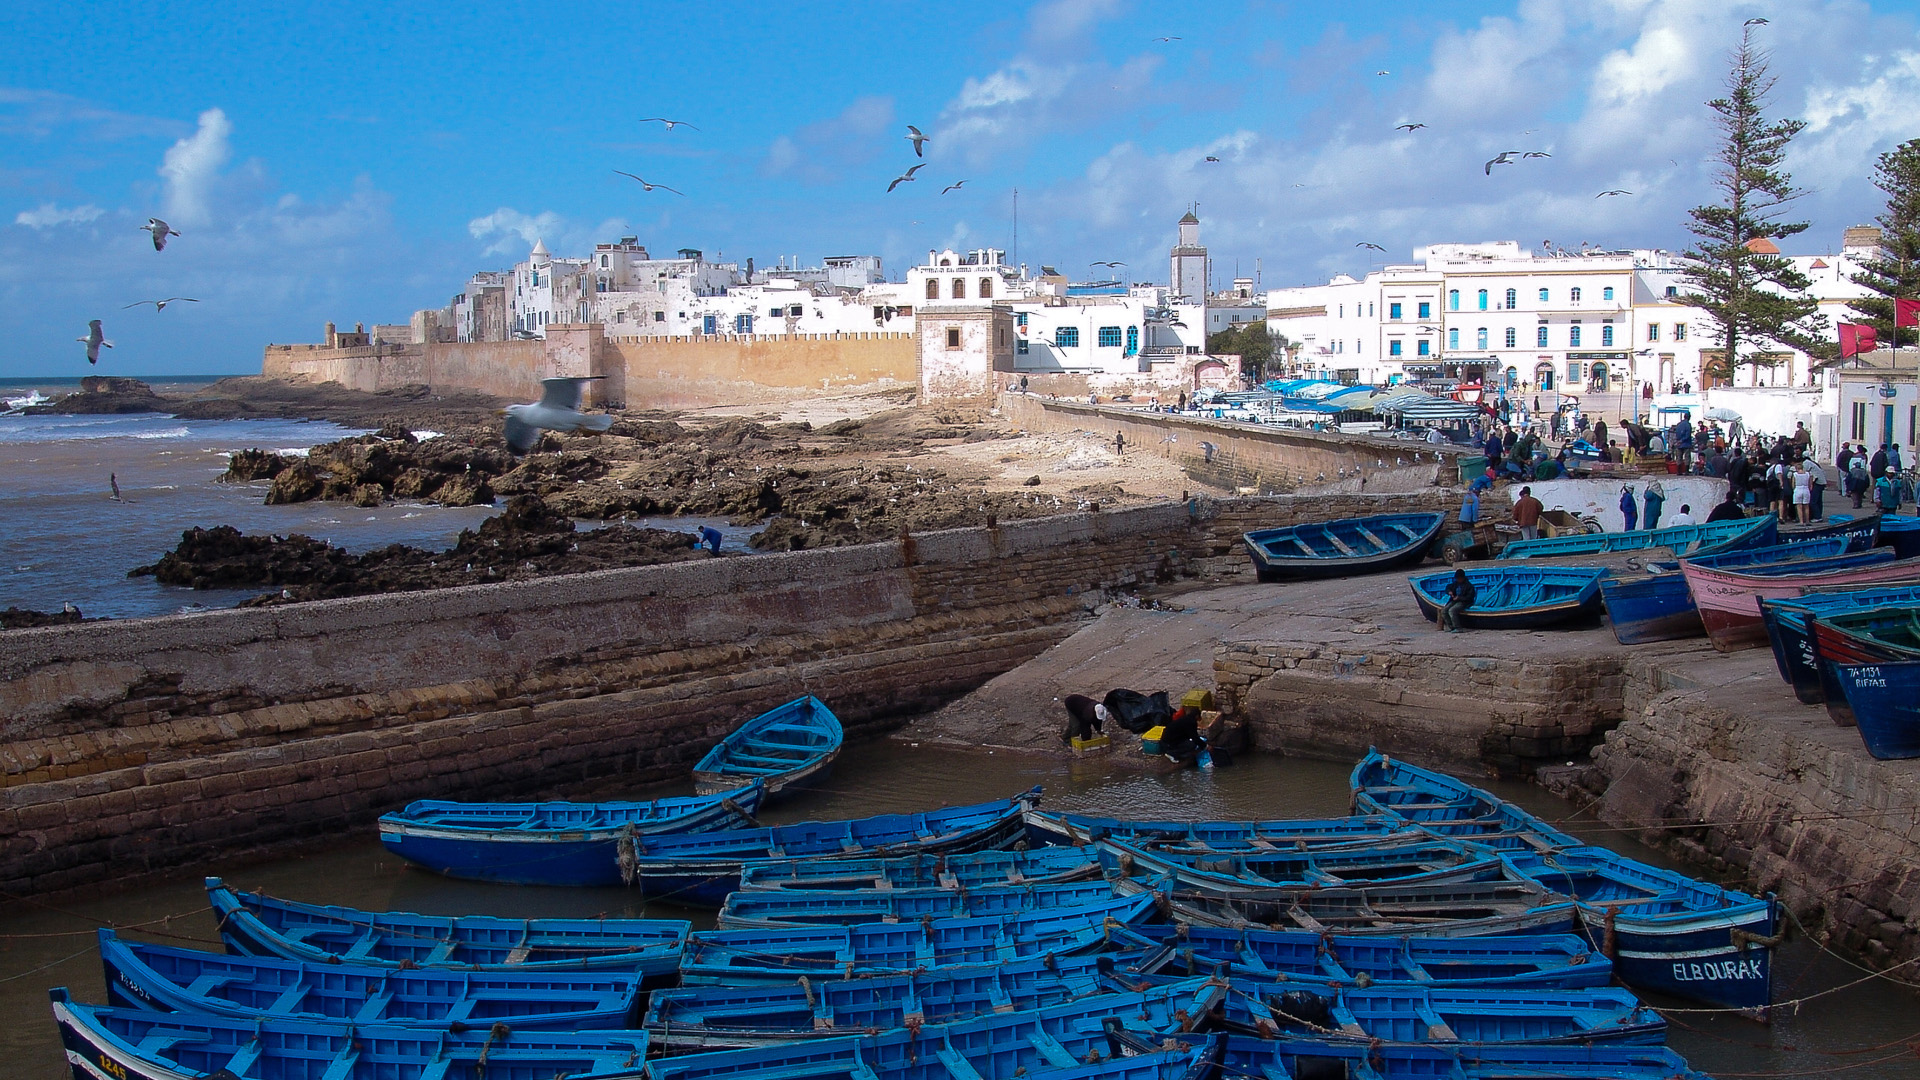 Blauwe boten in de haven van Essaouira